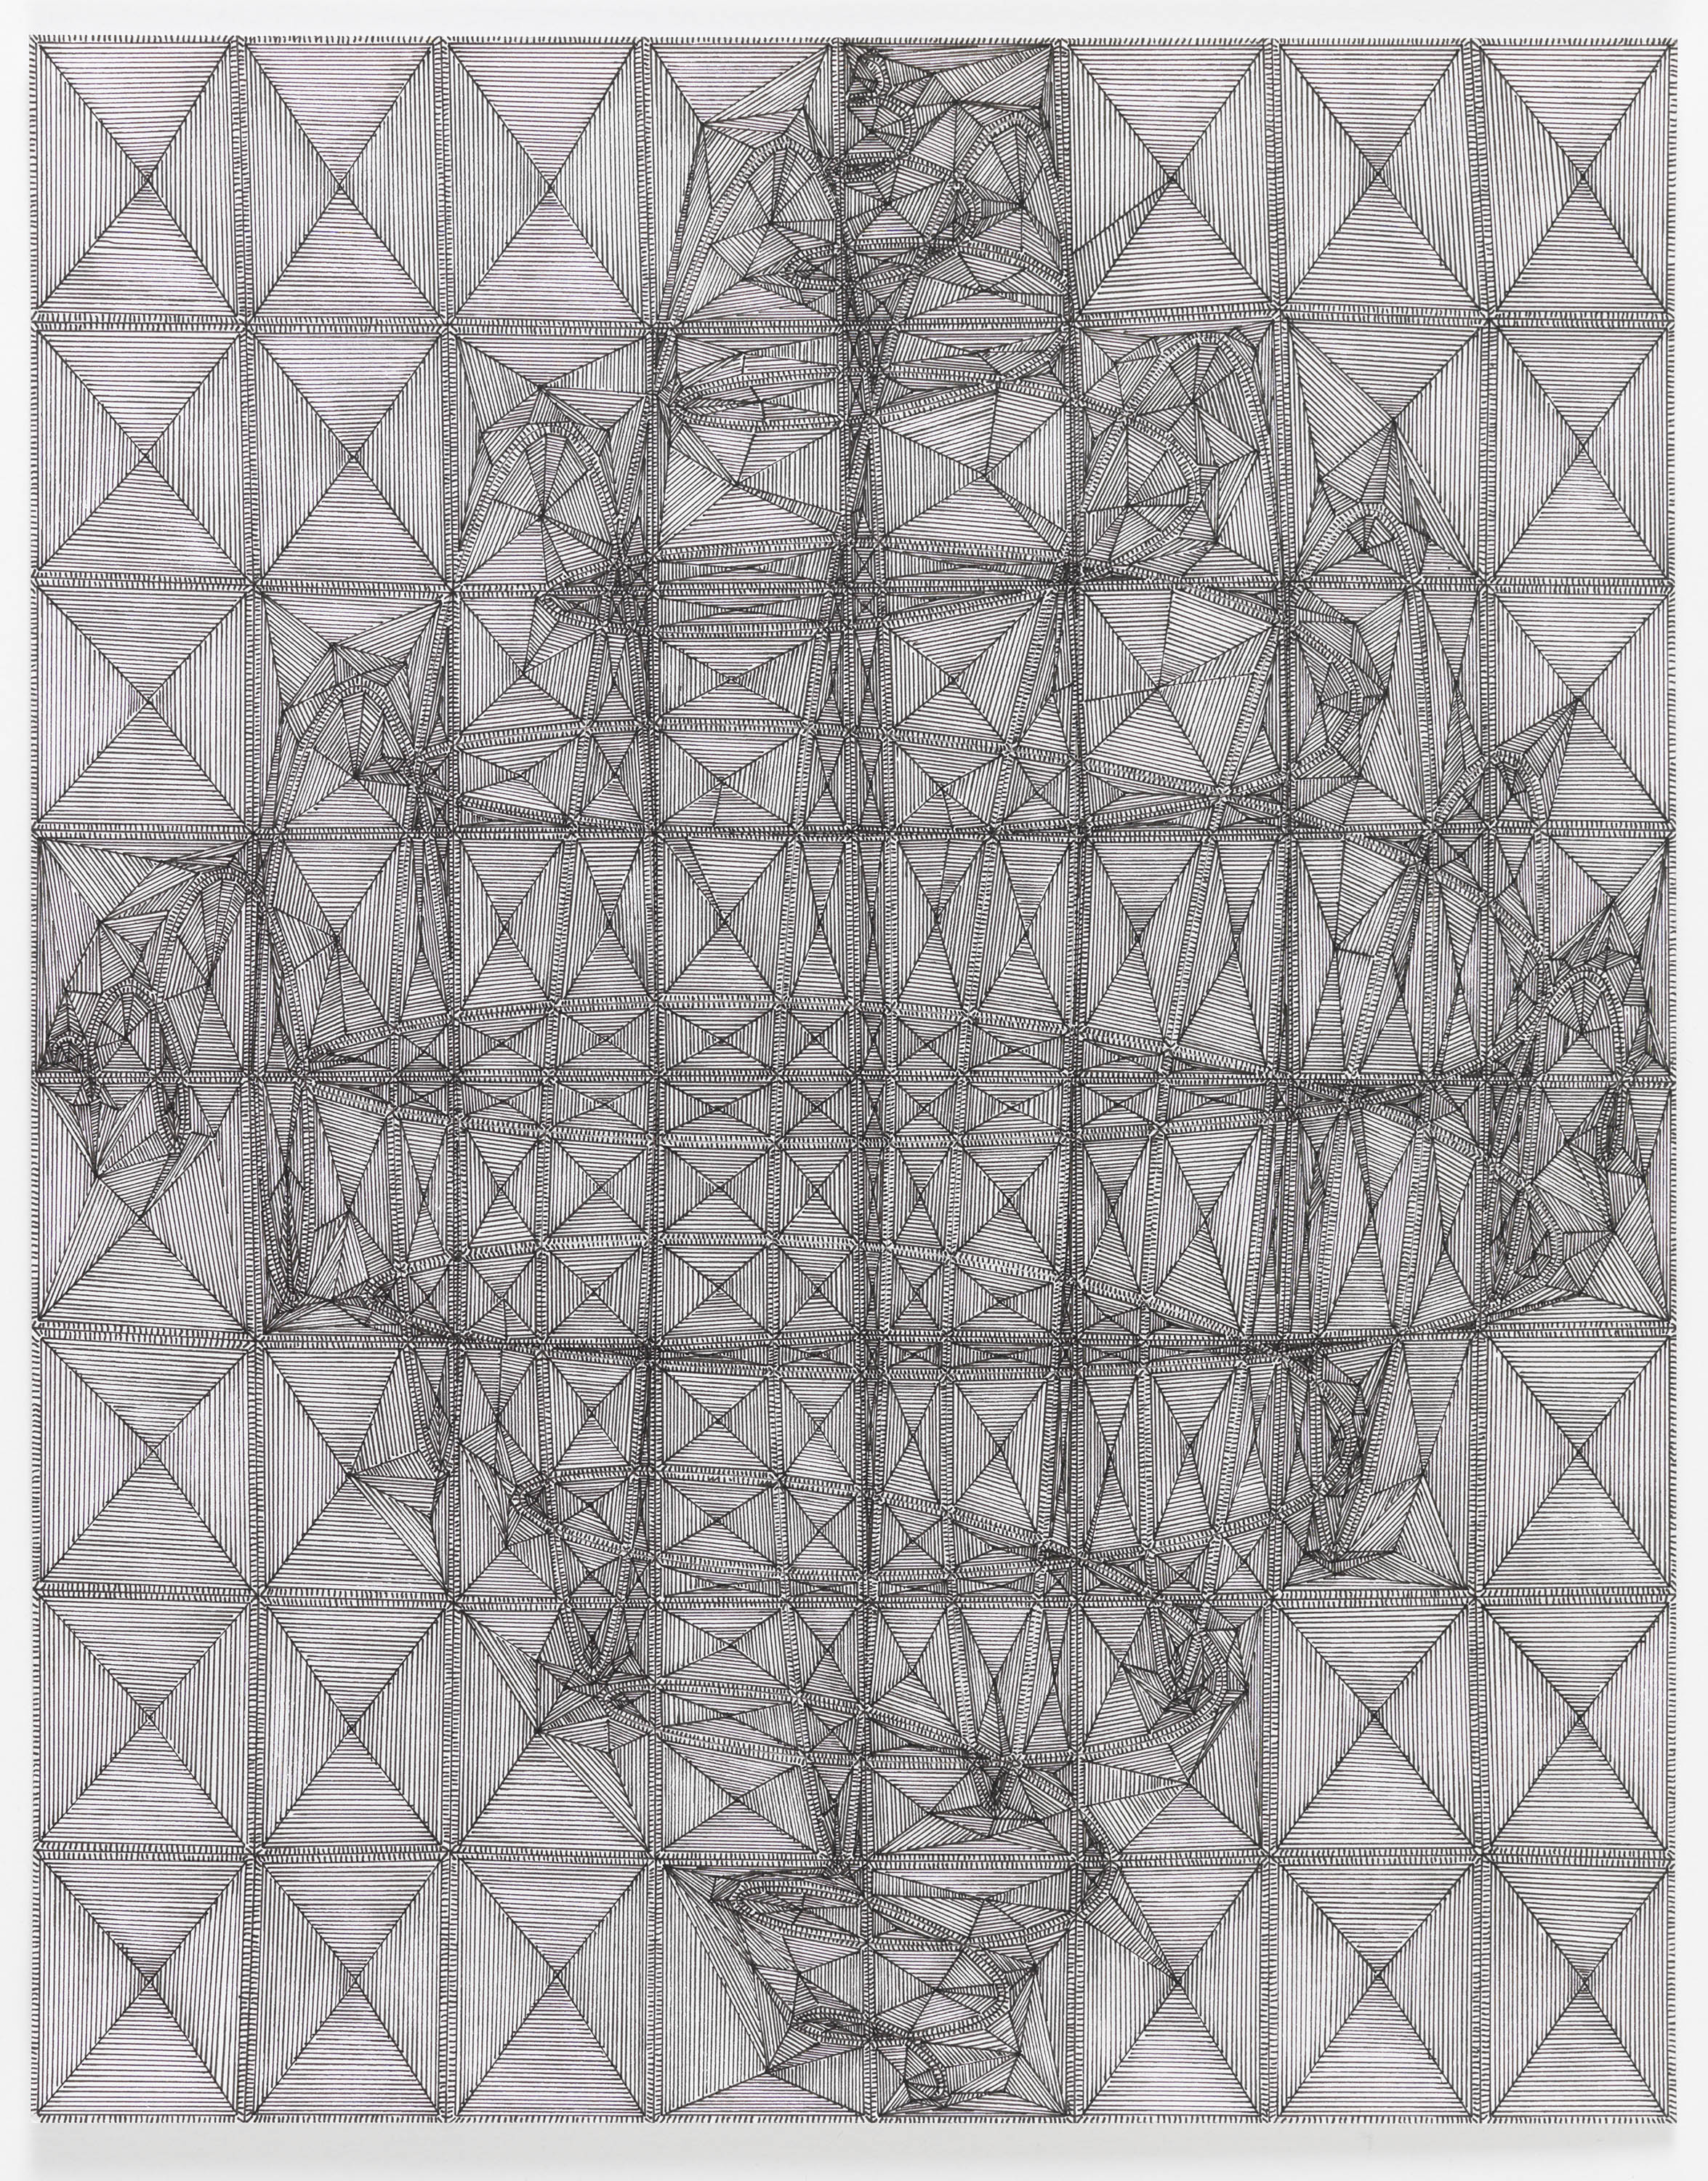 """Book 5 Volume 1 Page 11.2, 2018  in """"Richard Tinkler: Drawings at 56 Henry."""